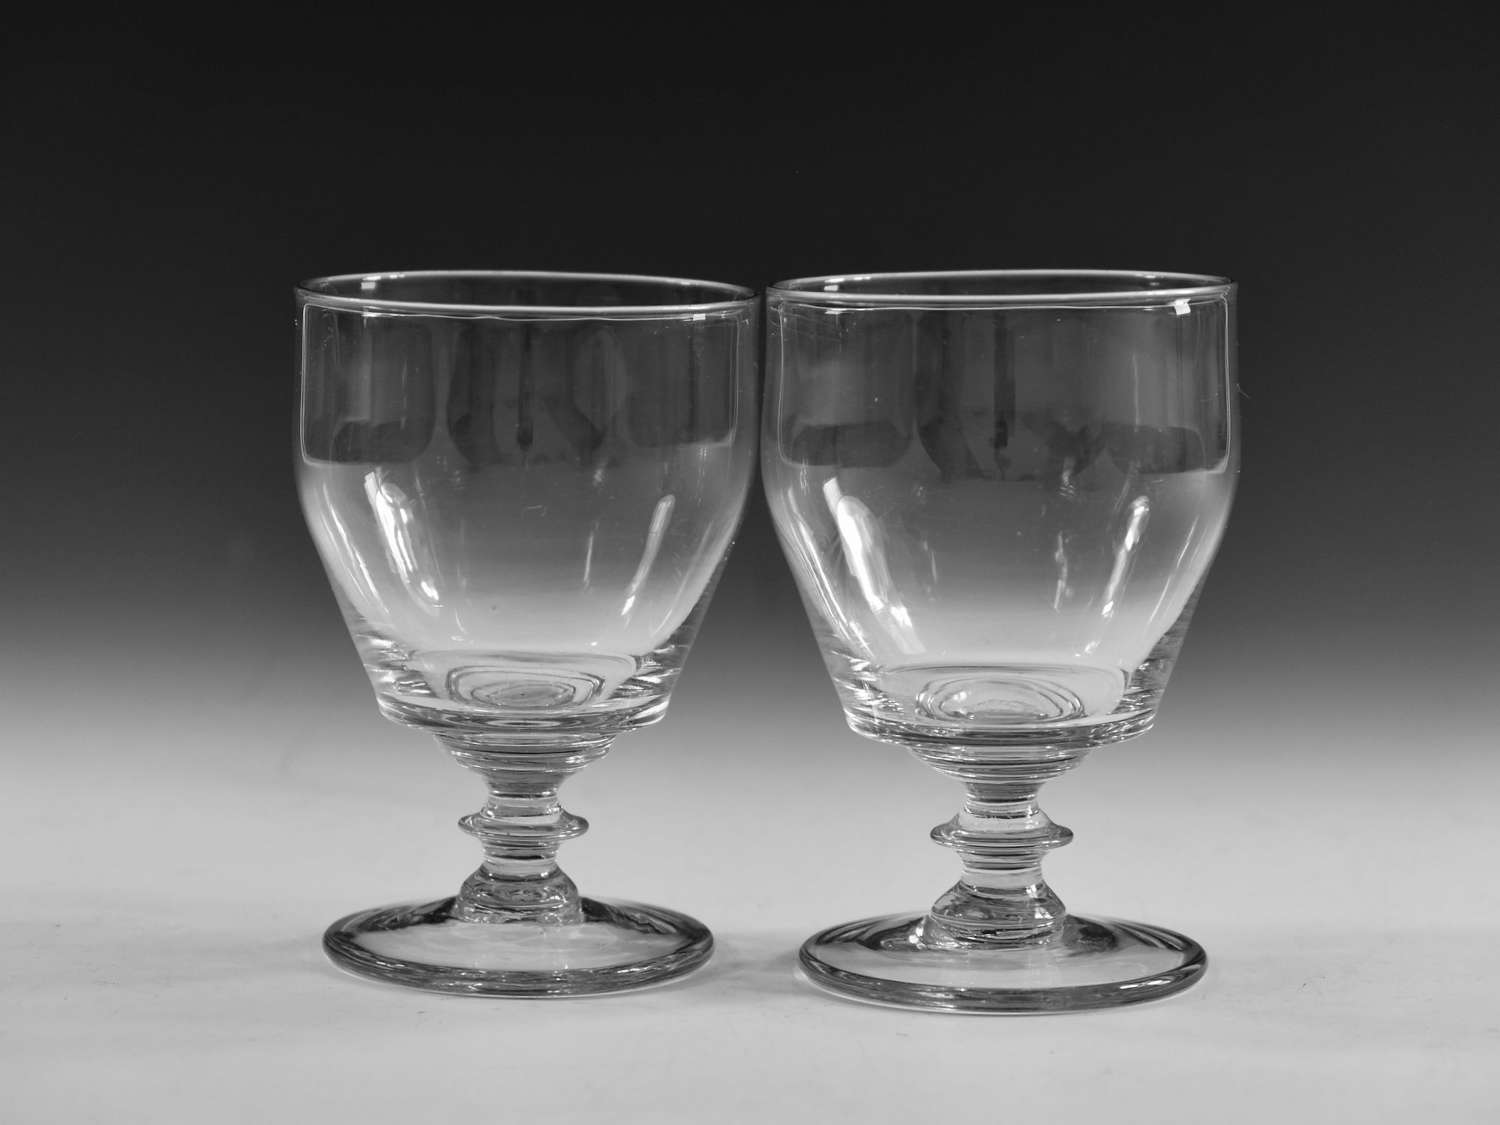 Antique glass rummers pair English c1820